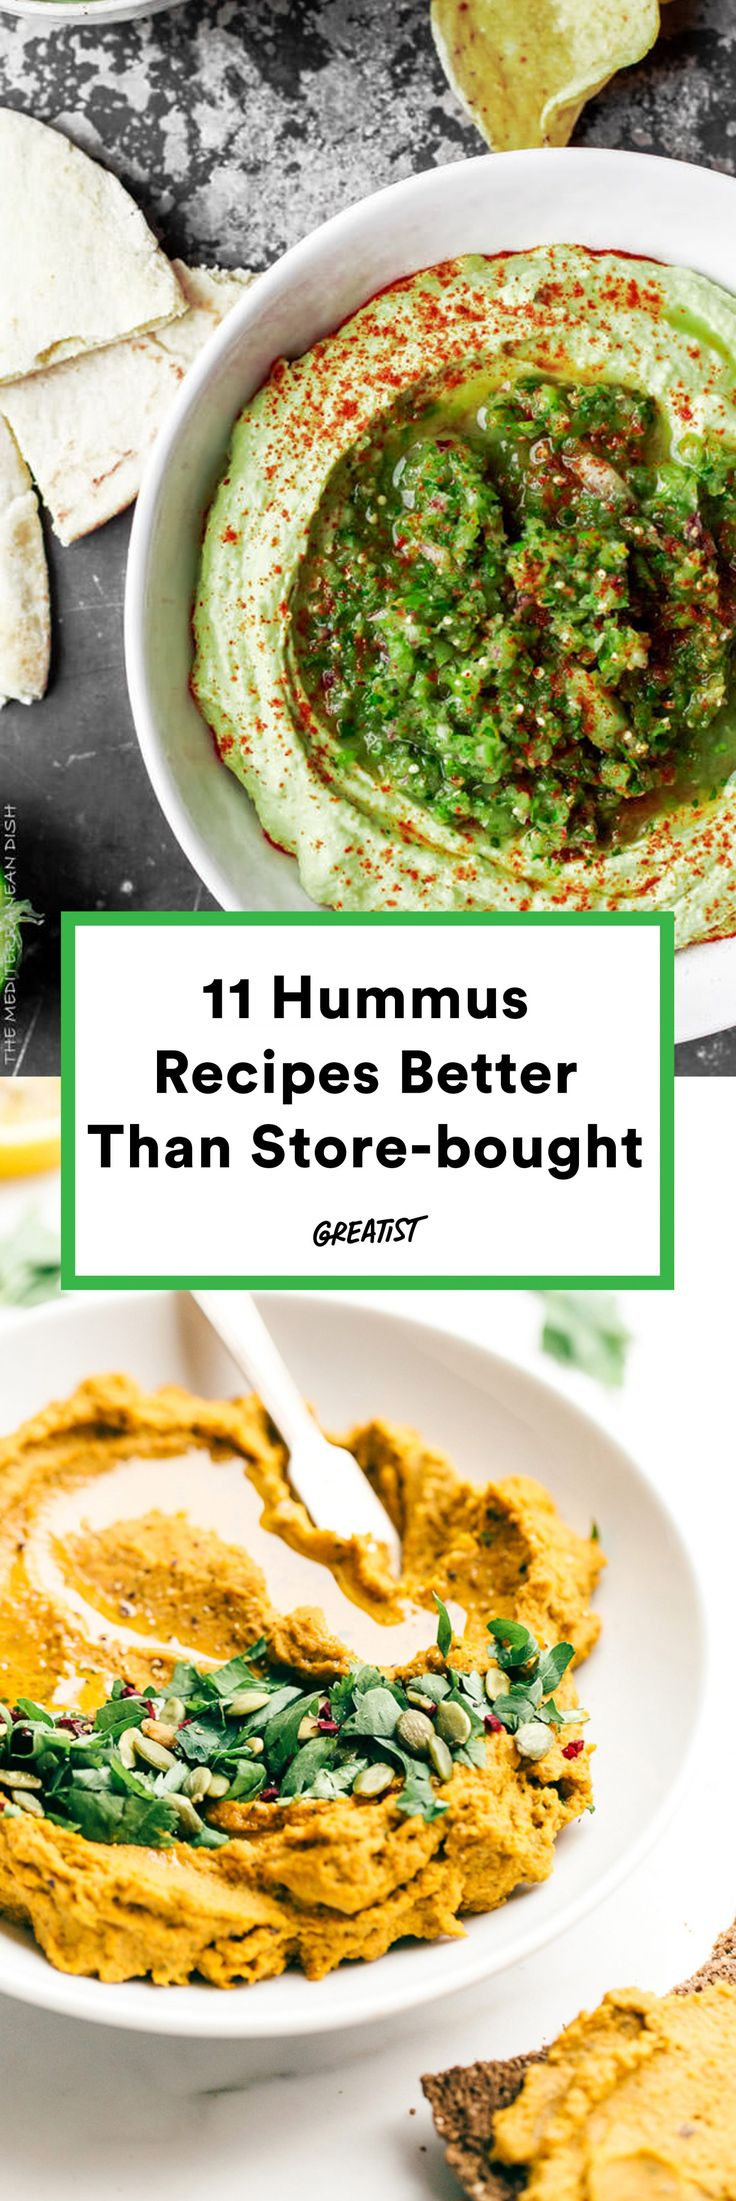 """Making homemade hummus is hard,"" says the old you. #greatist https://greatist.com/eat/hummus-recipes-that-are-better-than-store-bought"